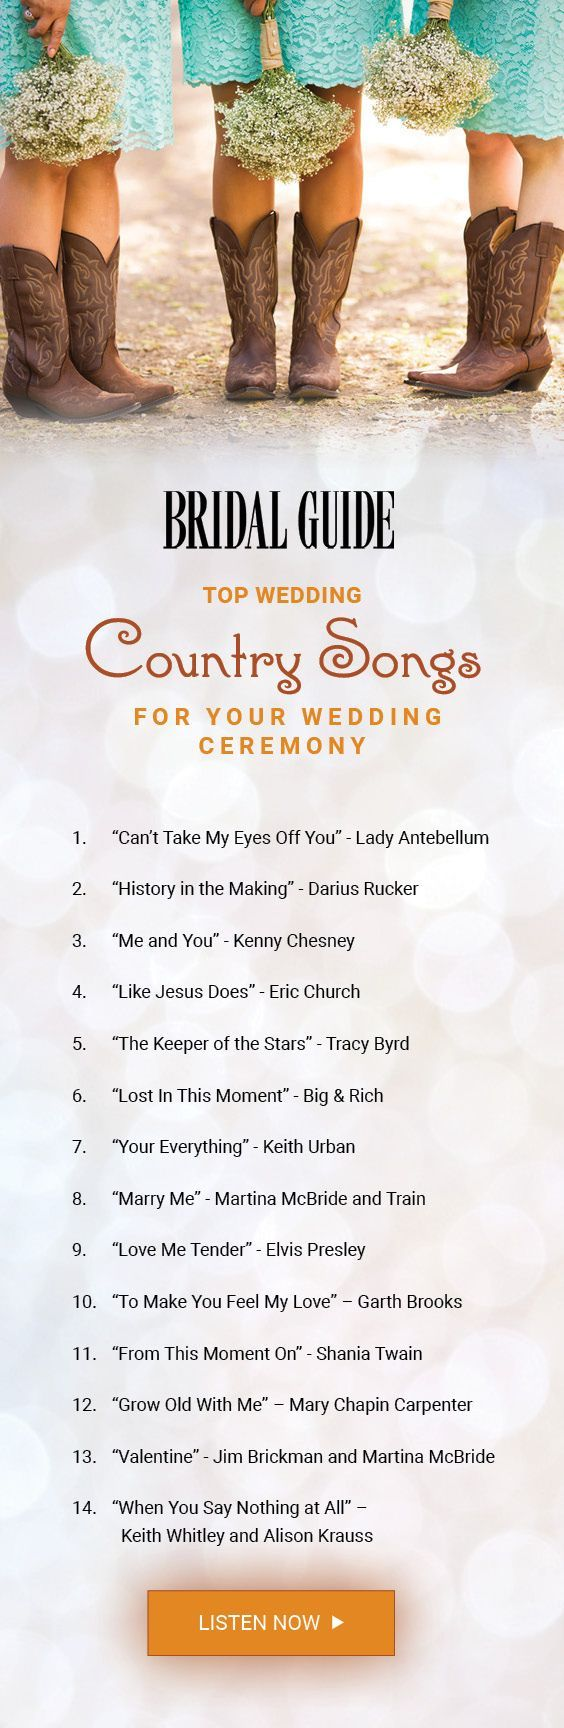 Check out our countdown of the top country songs to play during your wedding ceremony!